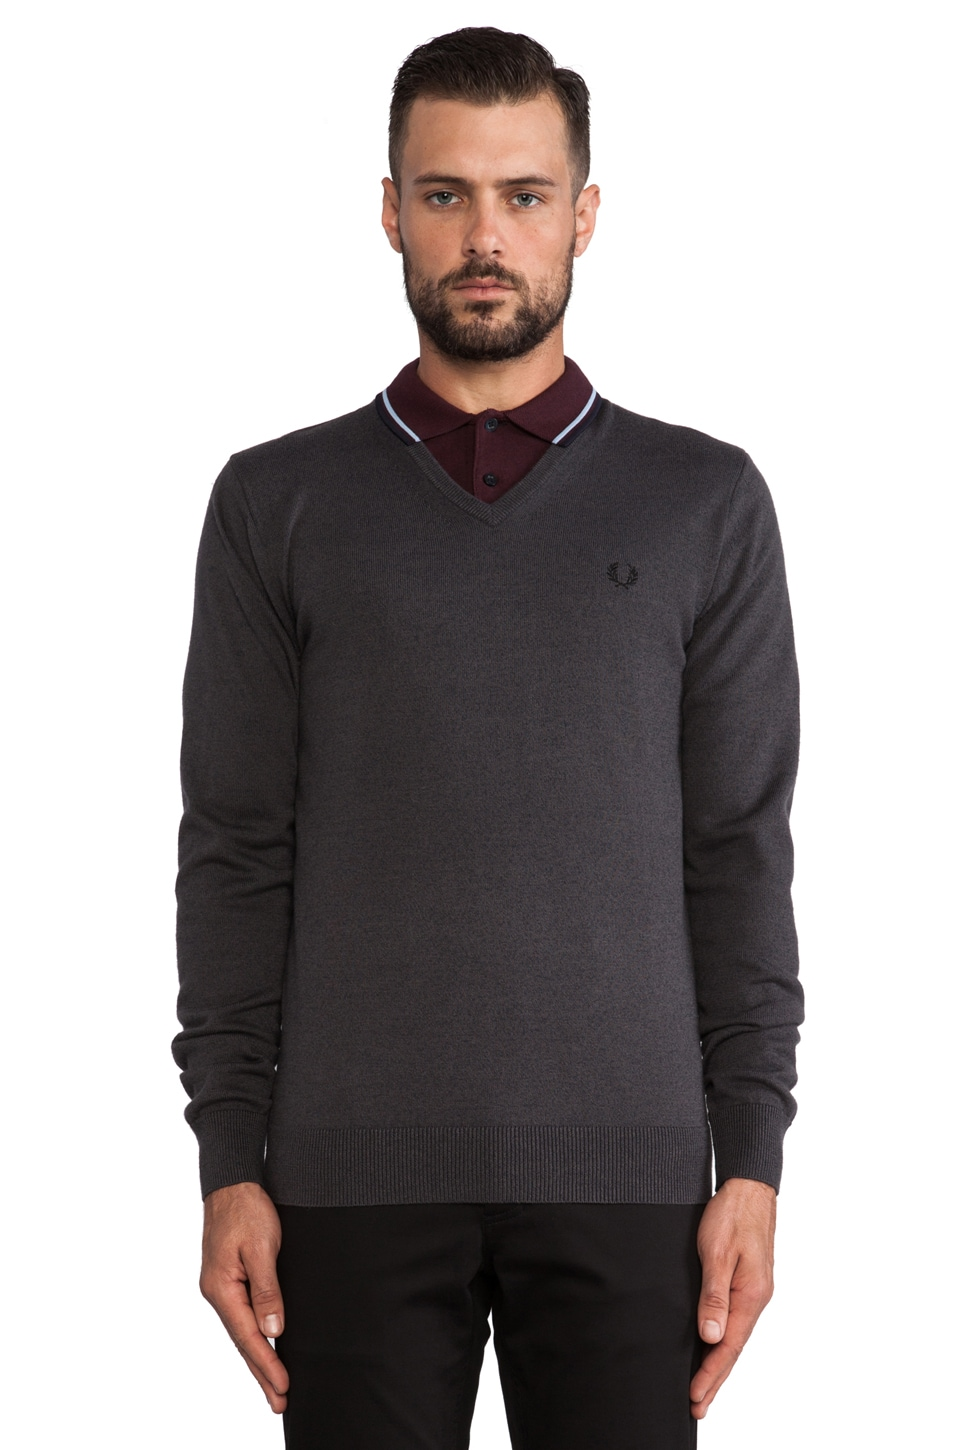 Fred Perry Classic V-Neck Sweater in Graphite Marl